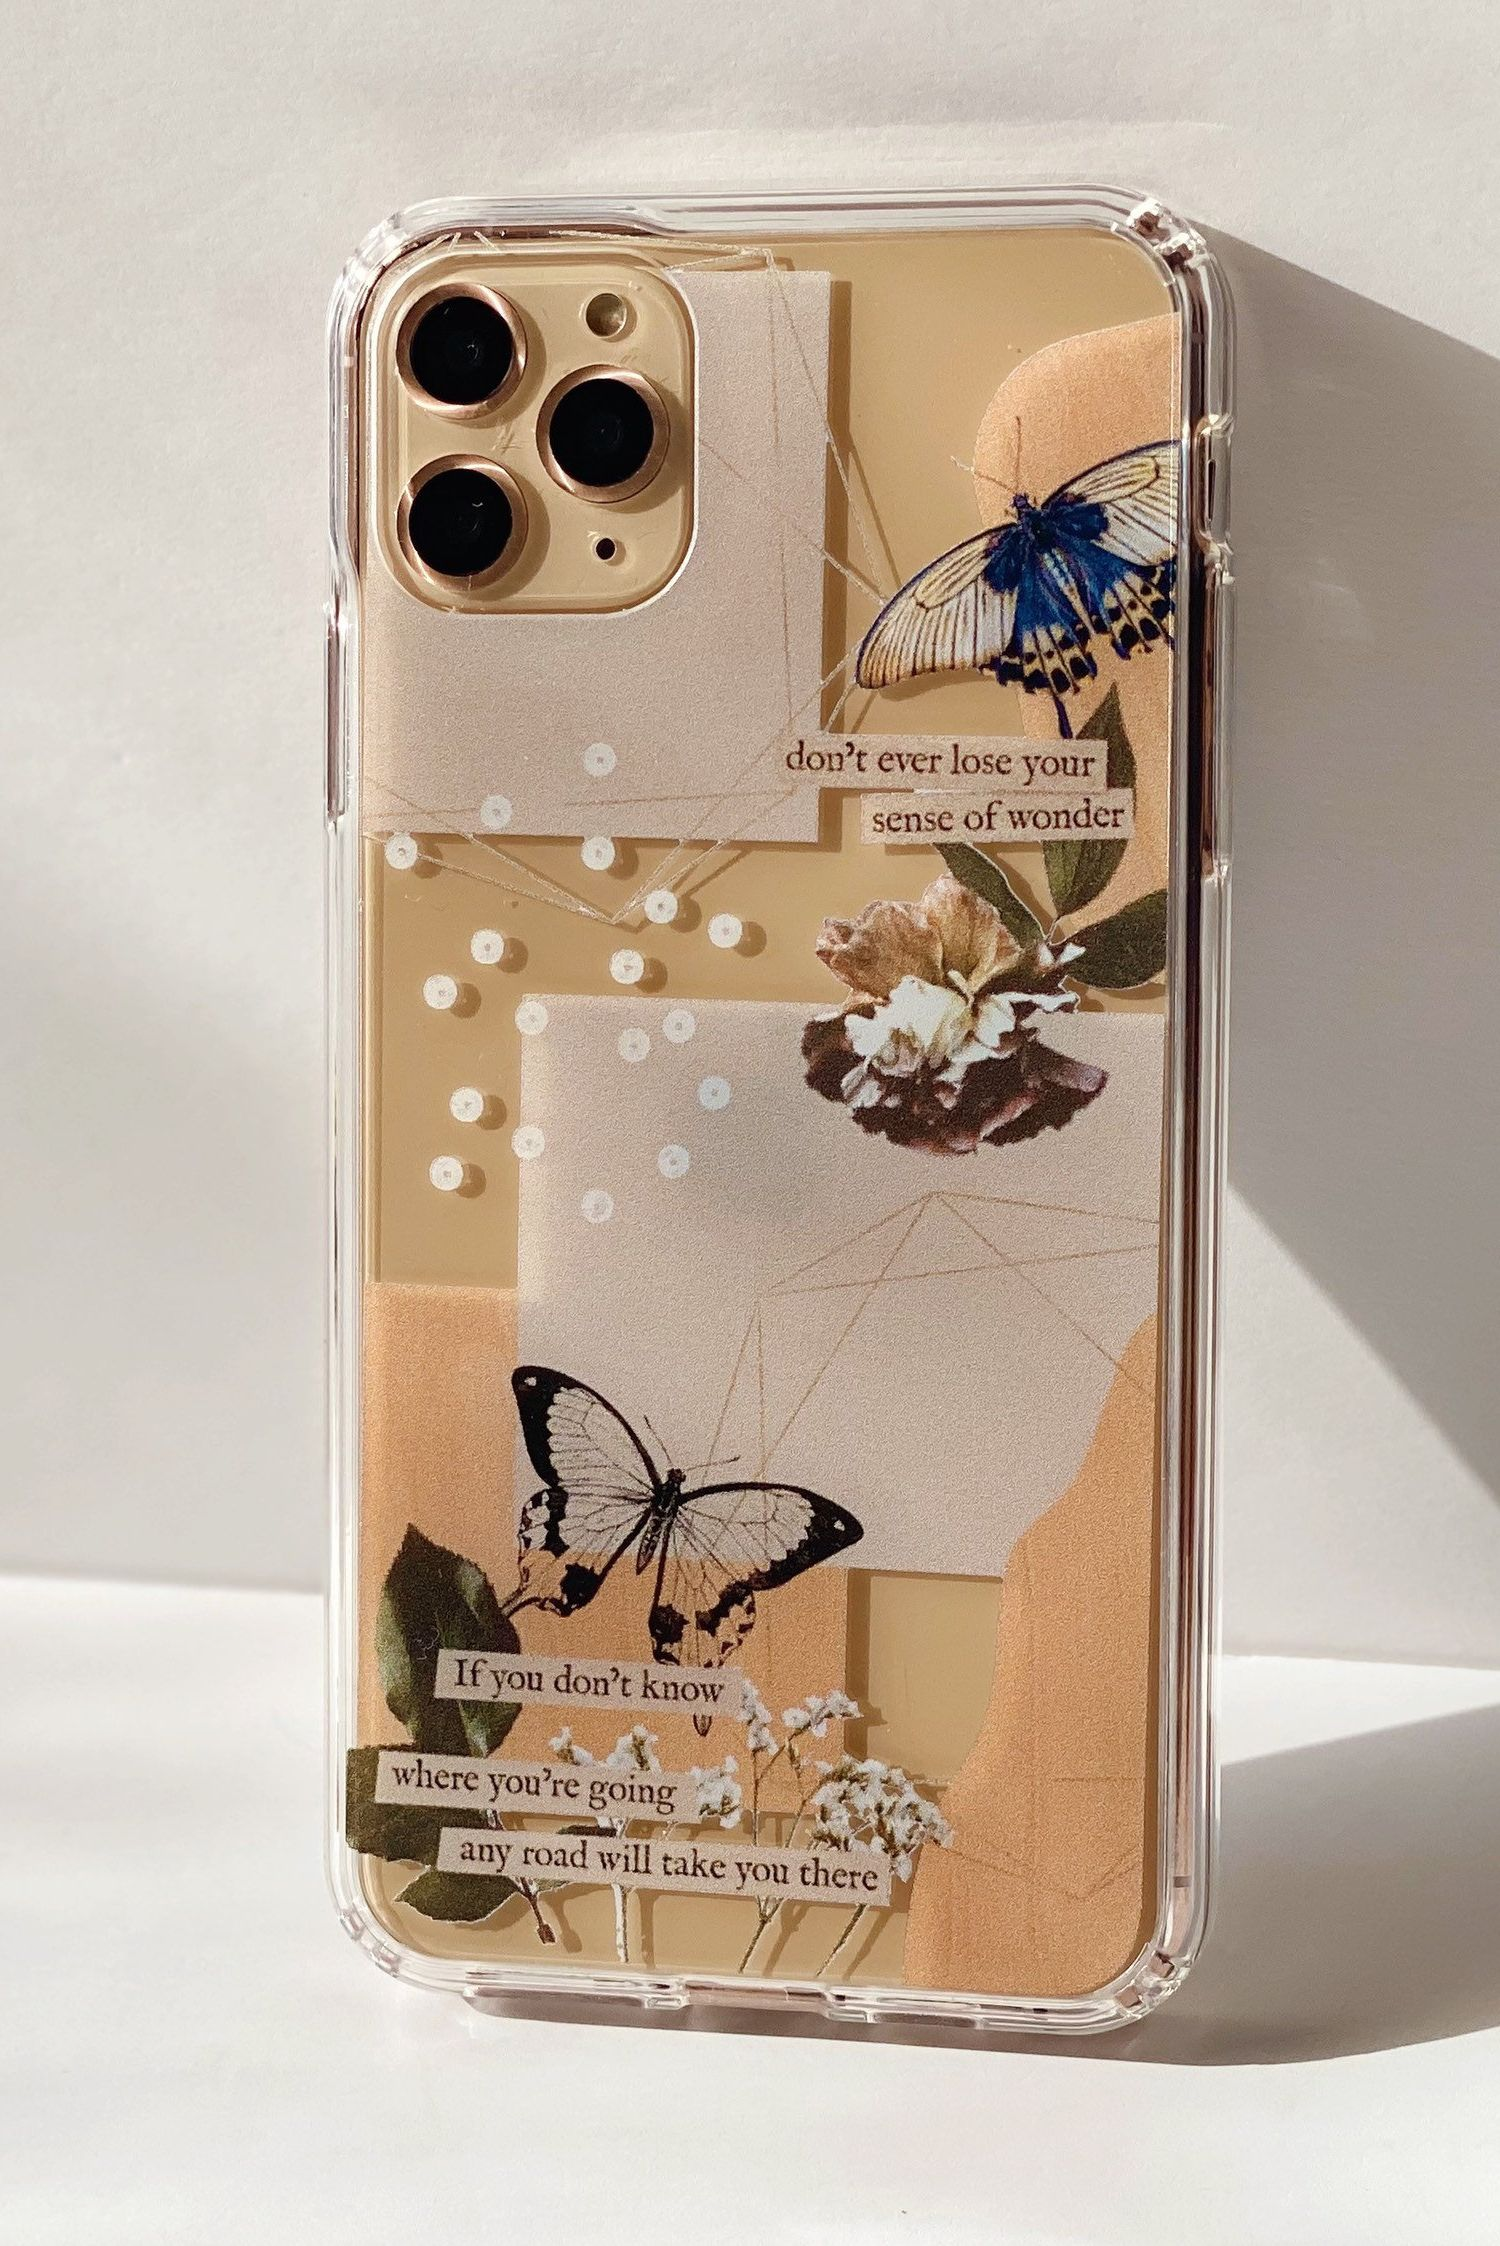 Aesthetic Abstract Butterfly Collage Clippings Clear Modern Etsy Collage Phone Case Vintage Phone Case Diy Phone Case